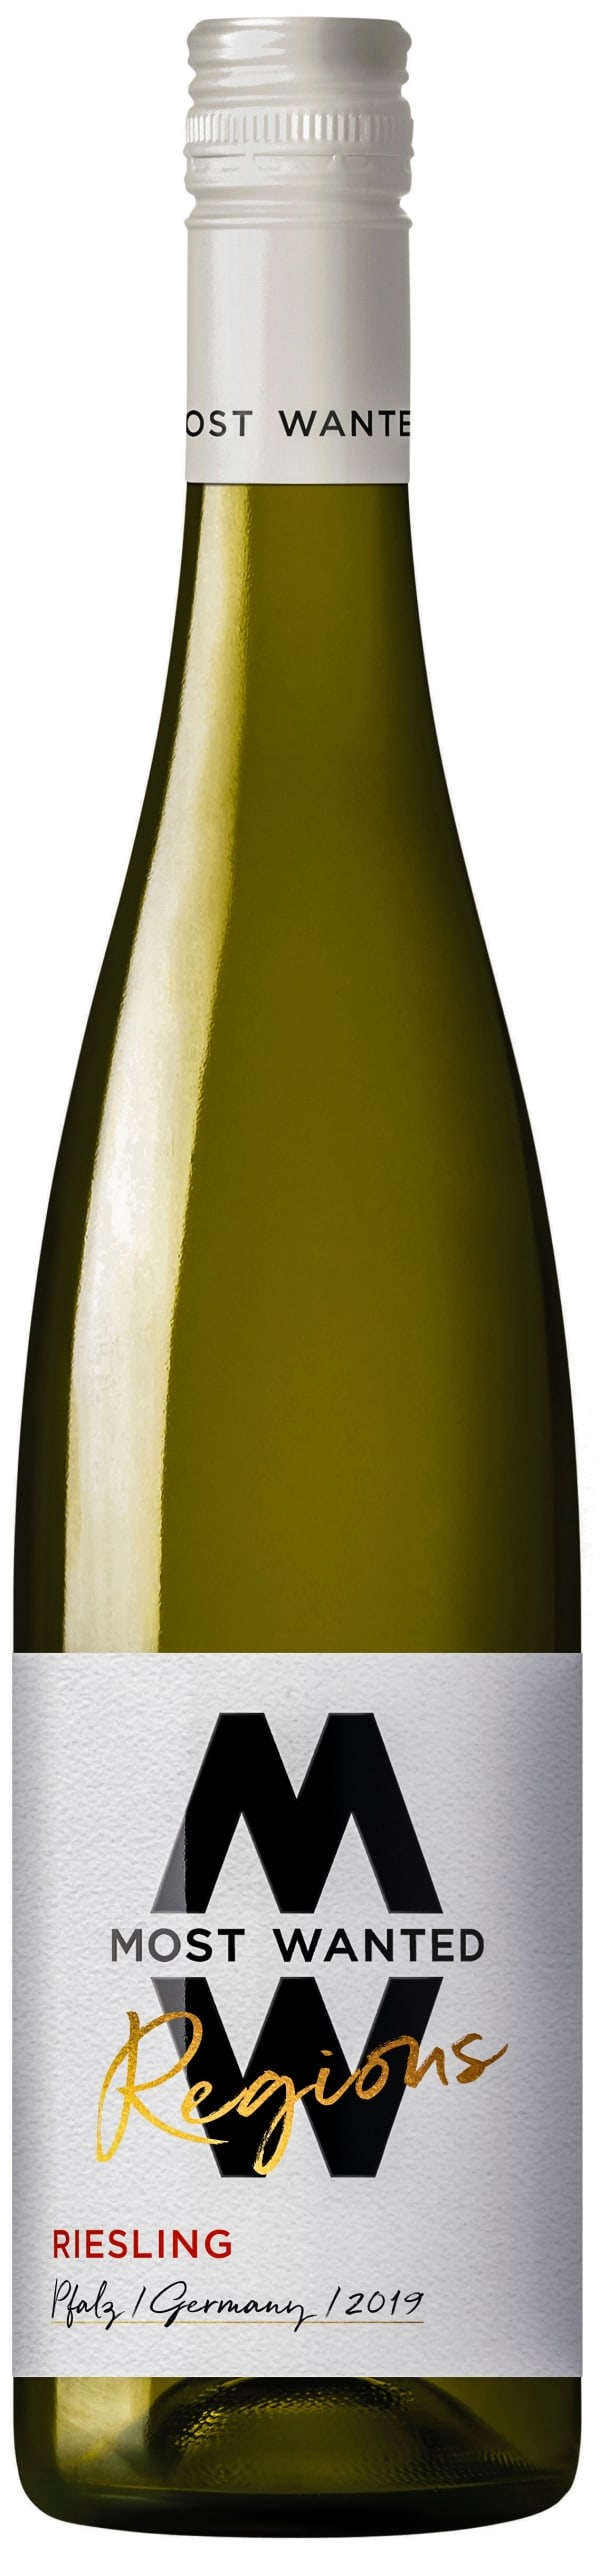 Most Wanted Regions Riesling 2019